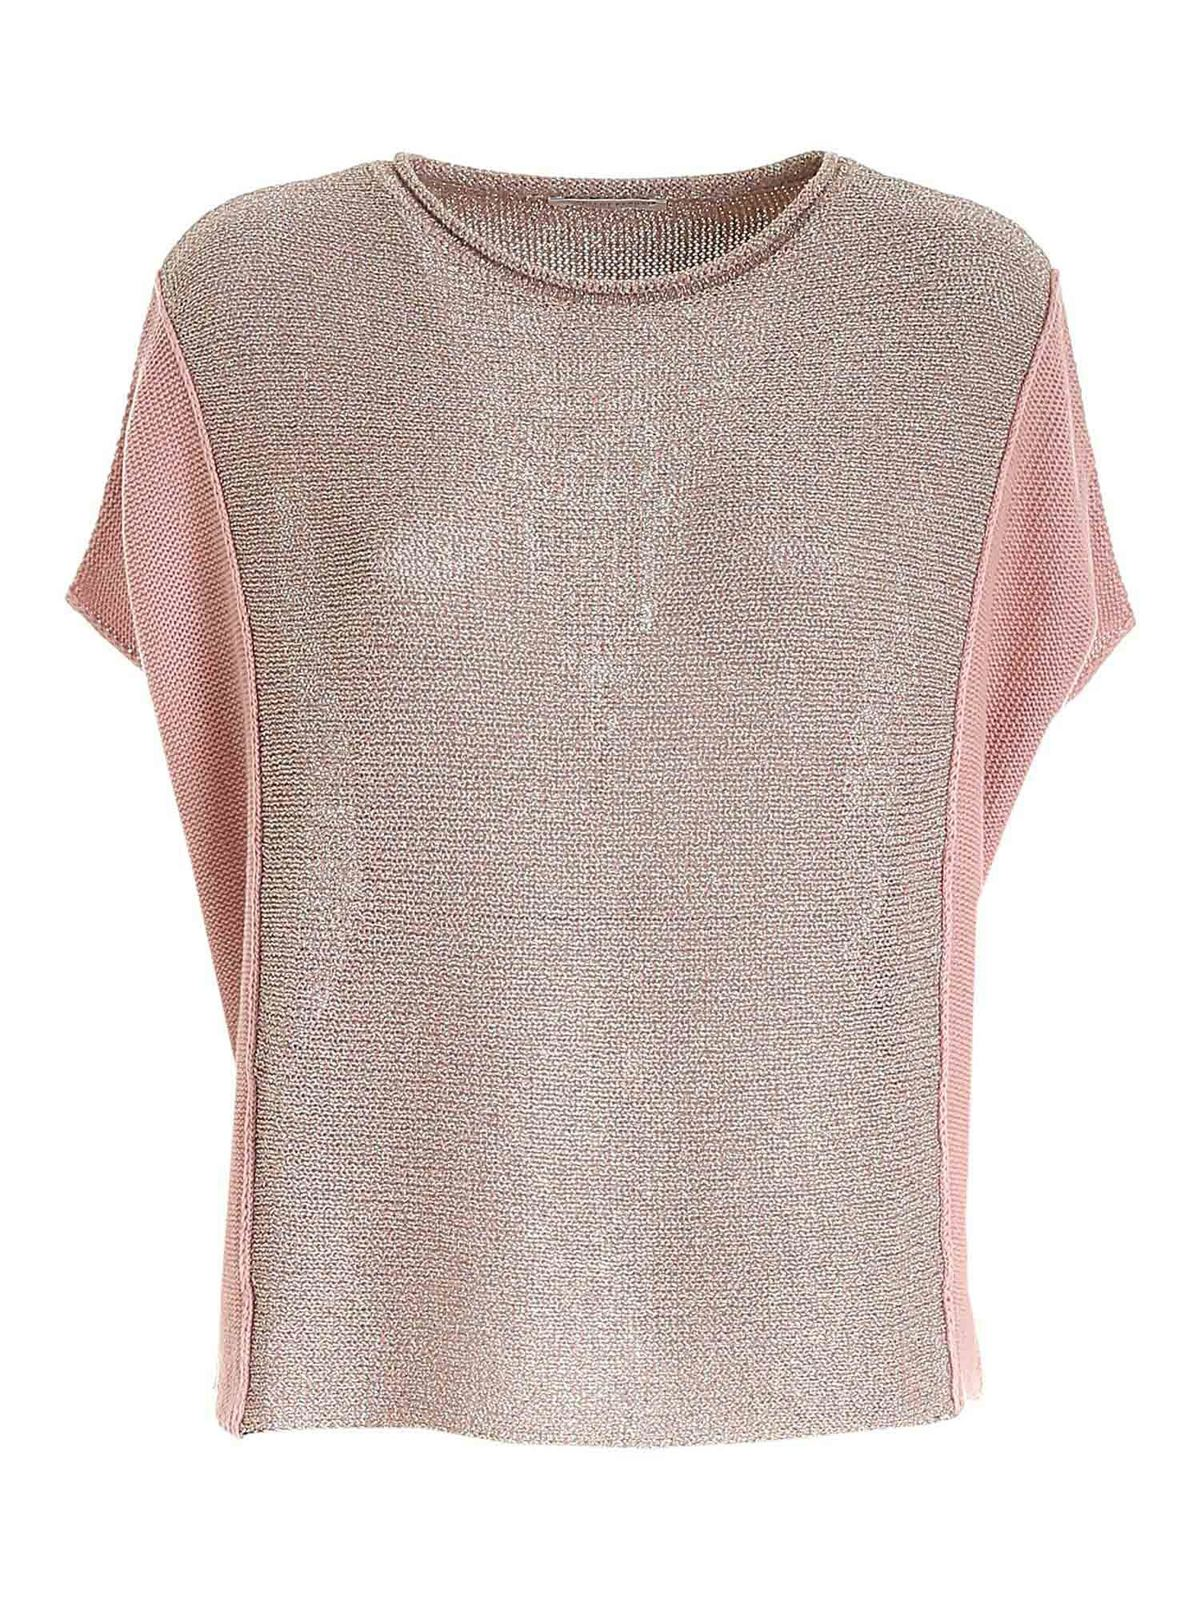 Le Tricot Perugia LAME DETAIL SWEATER IN PINK